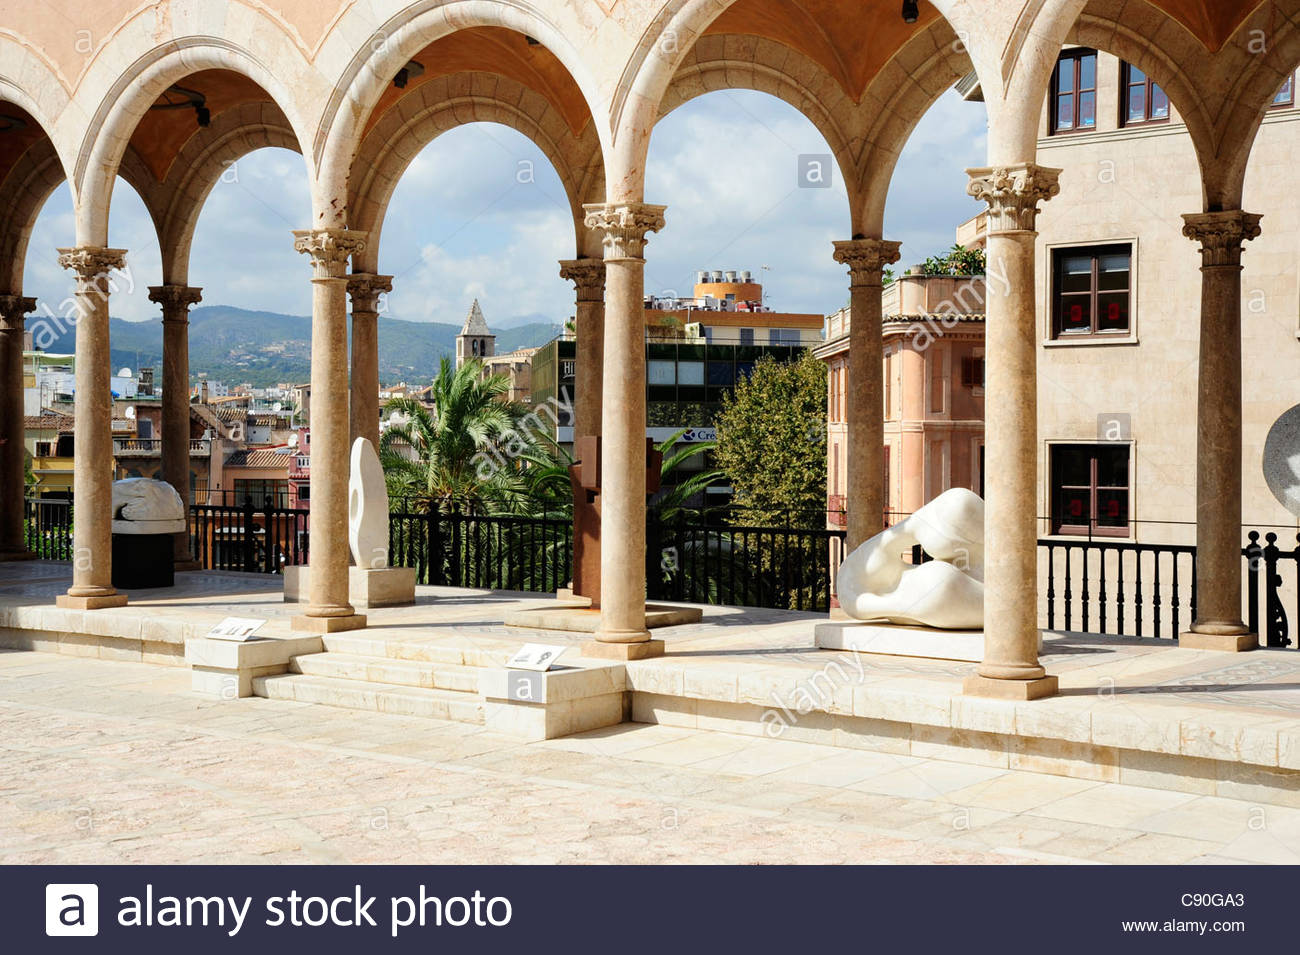 Patio with arcaded gallery March Palace Palau March a town palace in the historic city centre Ciutat Antiga Palma - Stock Image